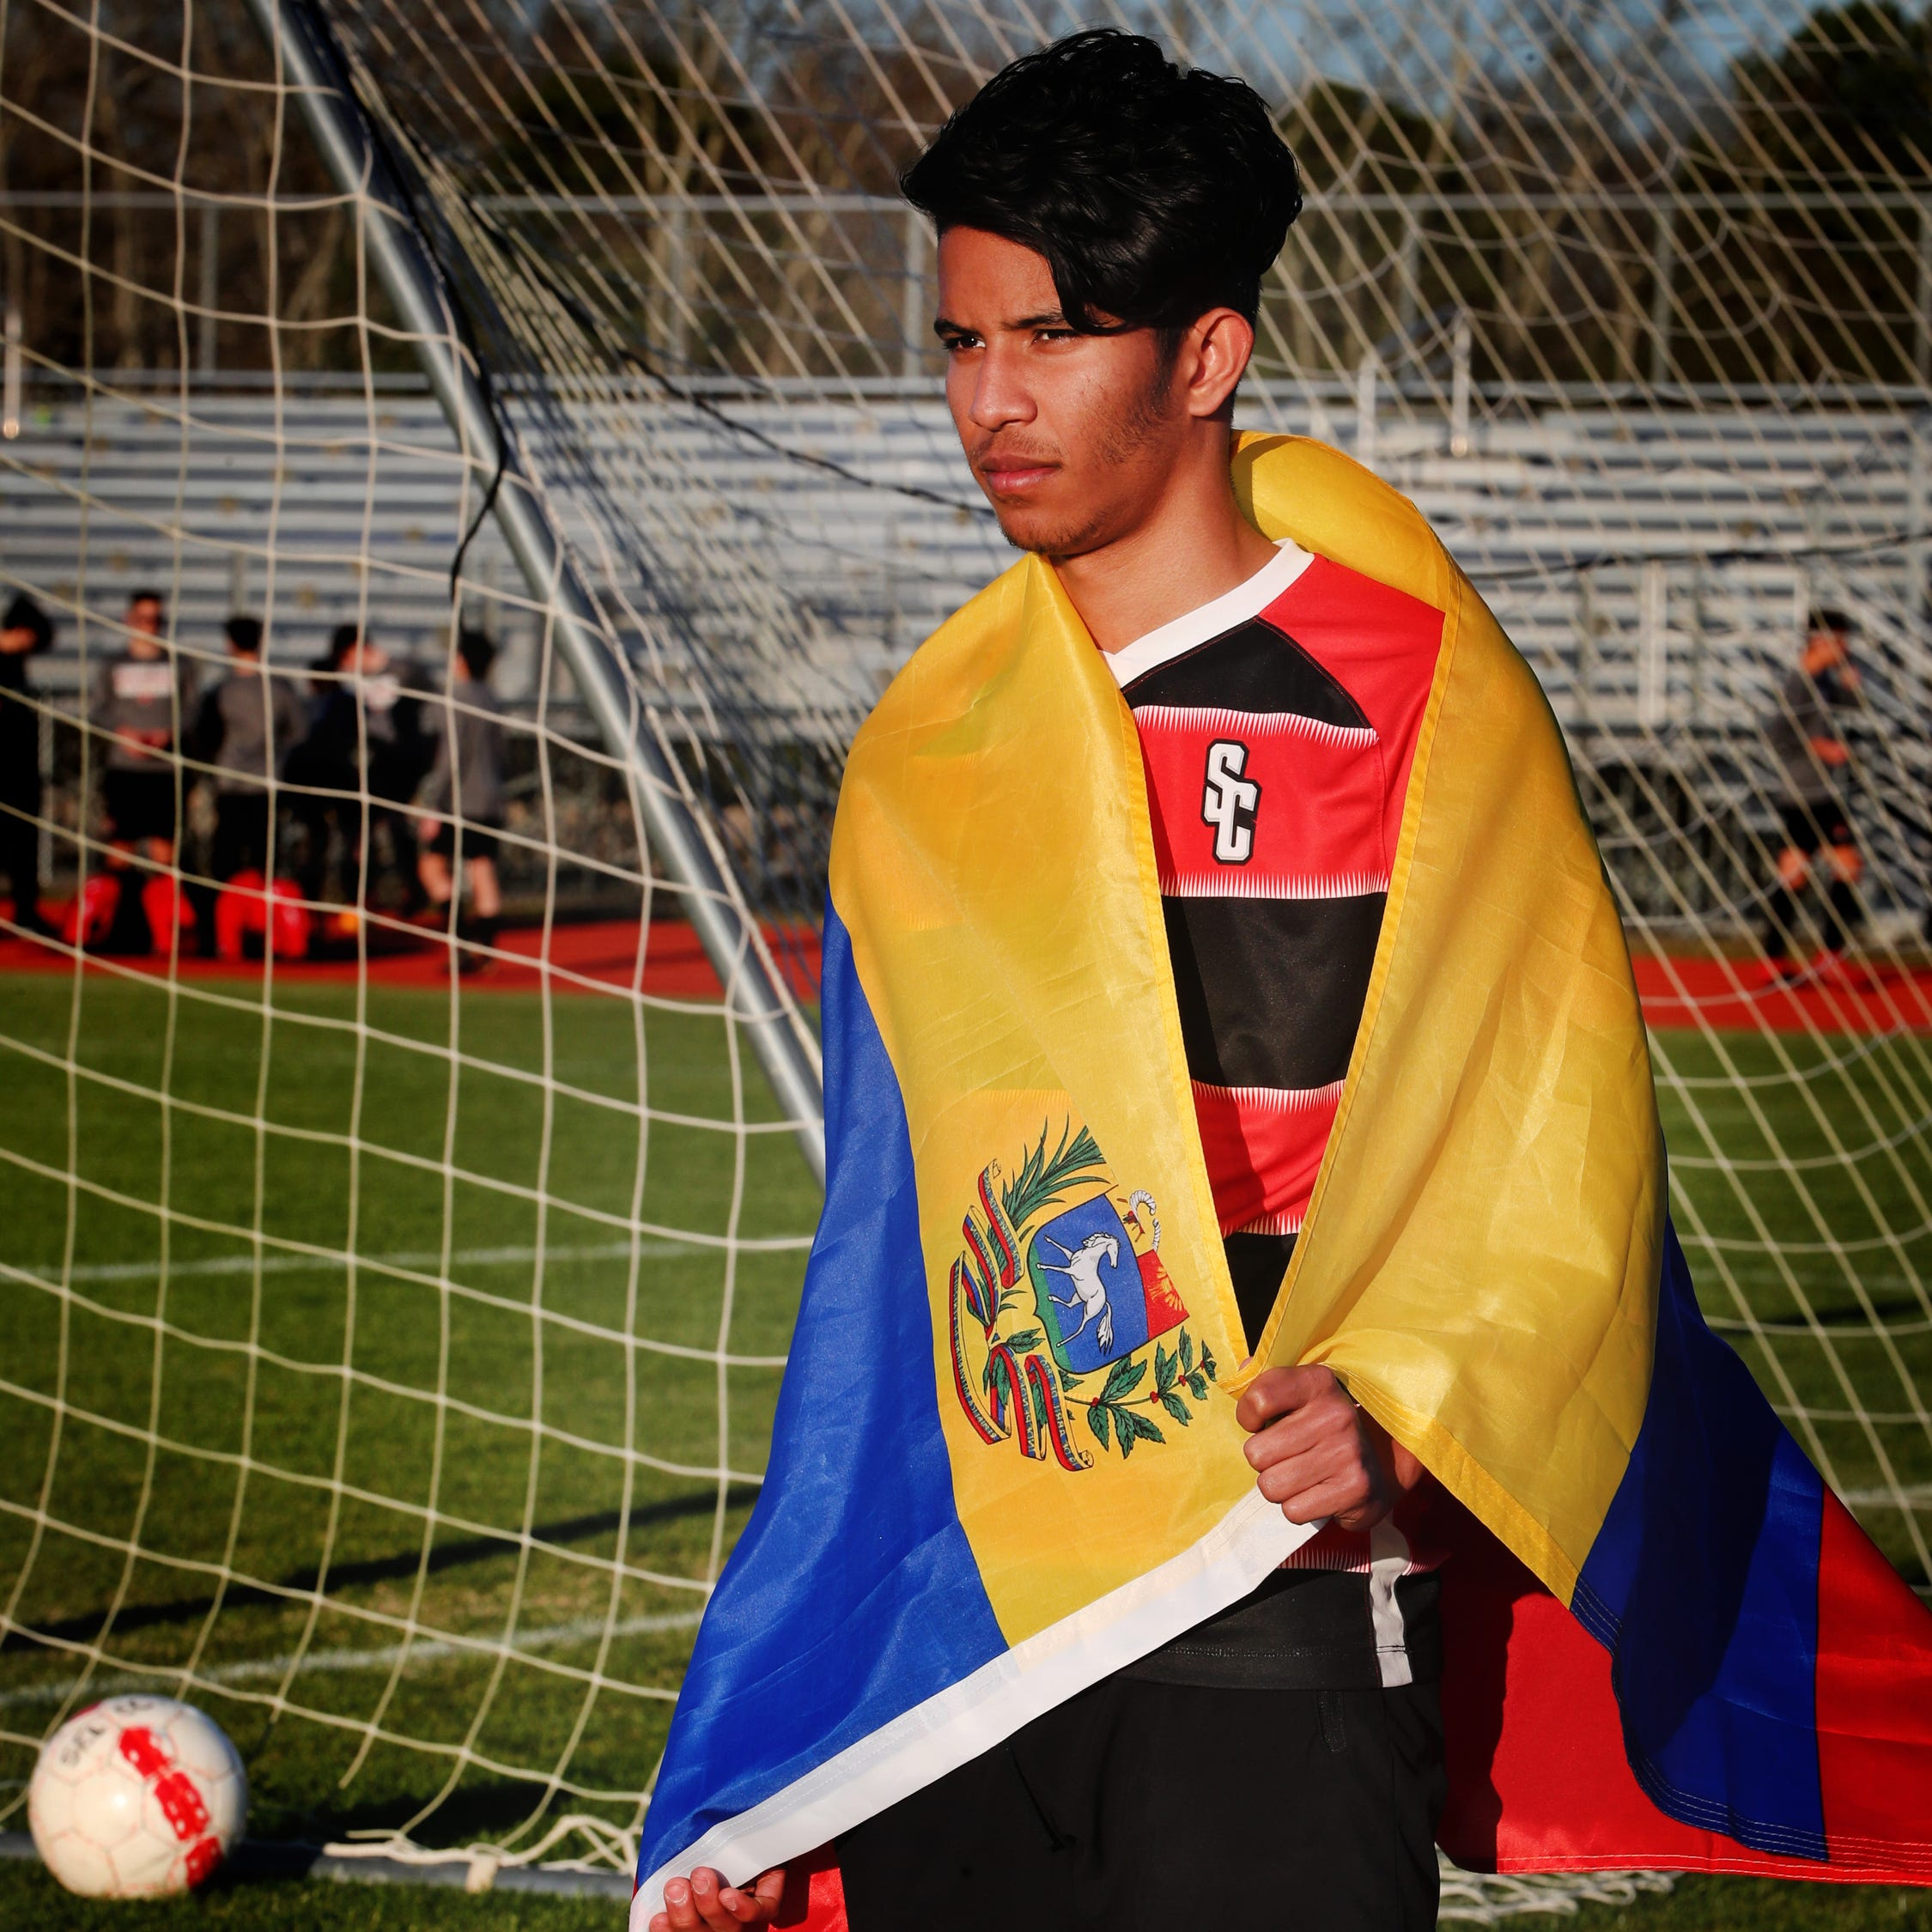 Oakland, Stewarts Creek soccer players left behind 'chaos' in Venezuela